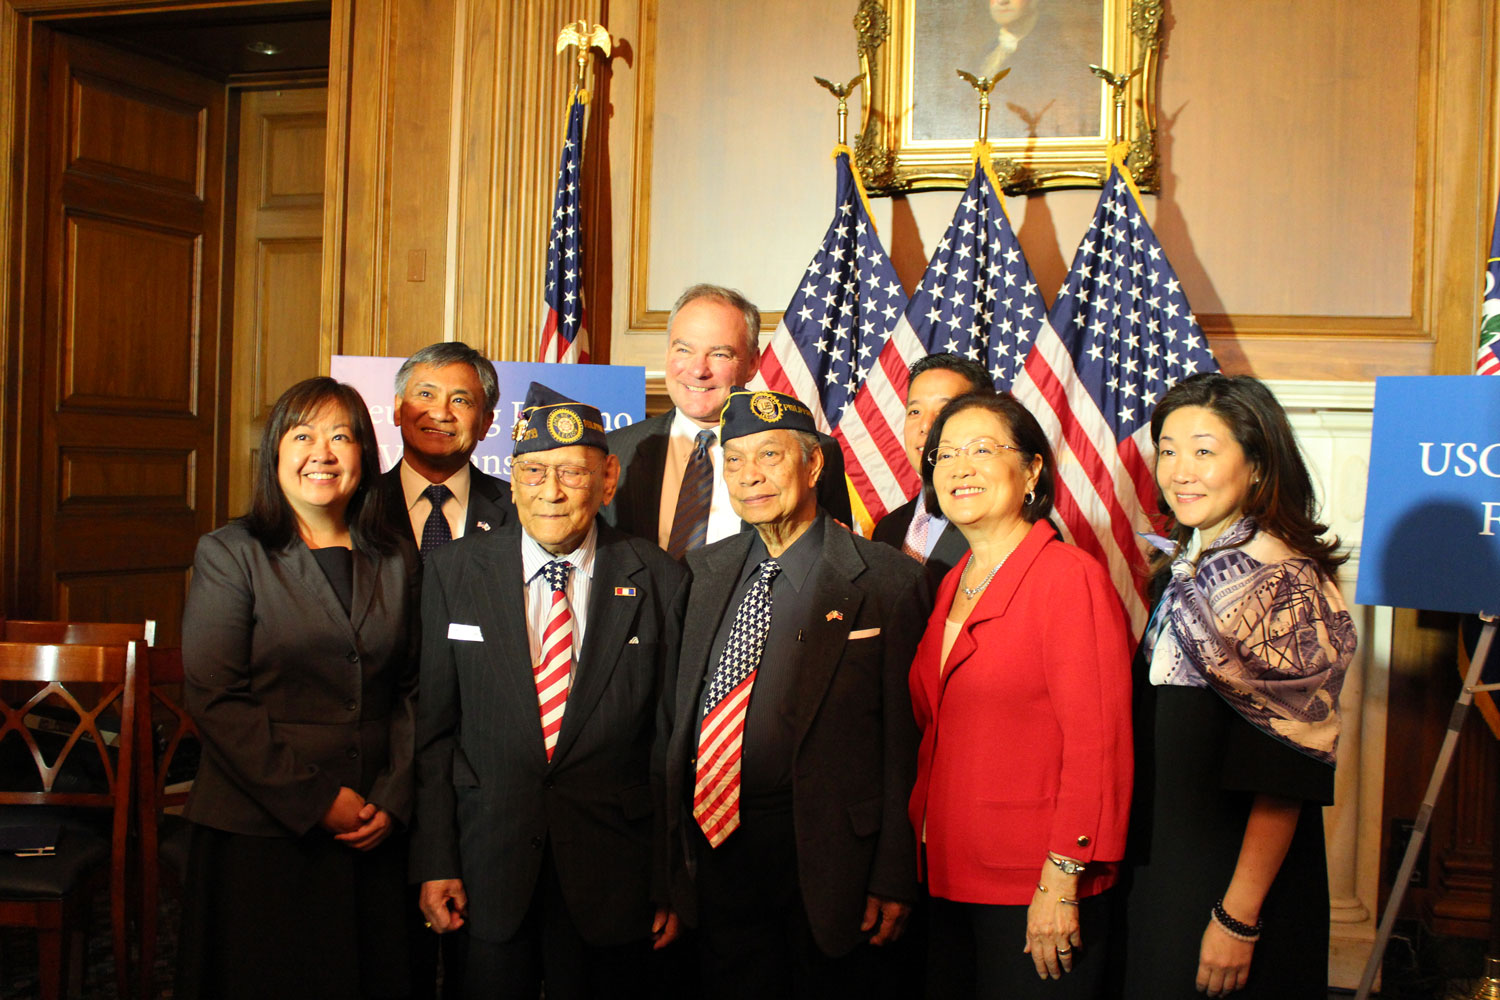 Filipino World War II veterans, members of Congress and civil rights advocates welcomed President Obama's authorization of the Filipino World War II Veterans Parole Program at a press conference on June 9, 2016 in Capitol Hill. From left: Marita Etcubanez of Asian American Advancing Justice (AAJC), Maj. Gen. Antonio Taguba (ret), Celestino Almeda, Sen. Tim Kaine (D-VA), Rudy Panaglima, NCAPA National Director Christopher Kang, Sen. Mazie Hirono (D-HI) and U.S. Citizenship and Immigration Services (USCIS) Chief of Staff Juliet Choi. (Photo by FilVetREP).